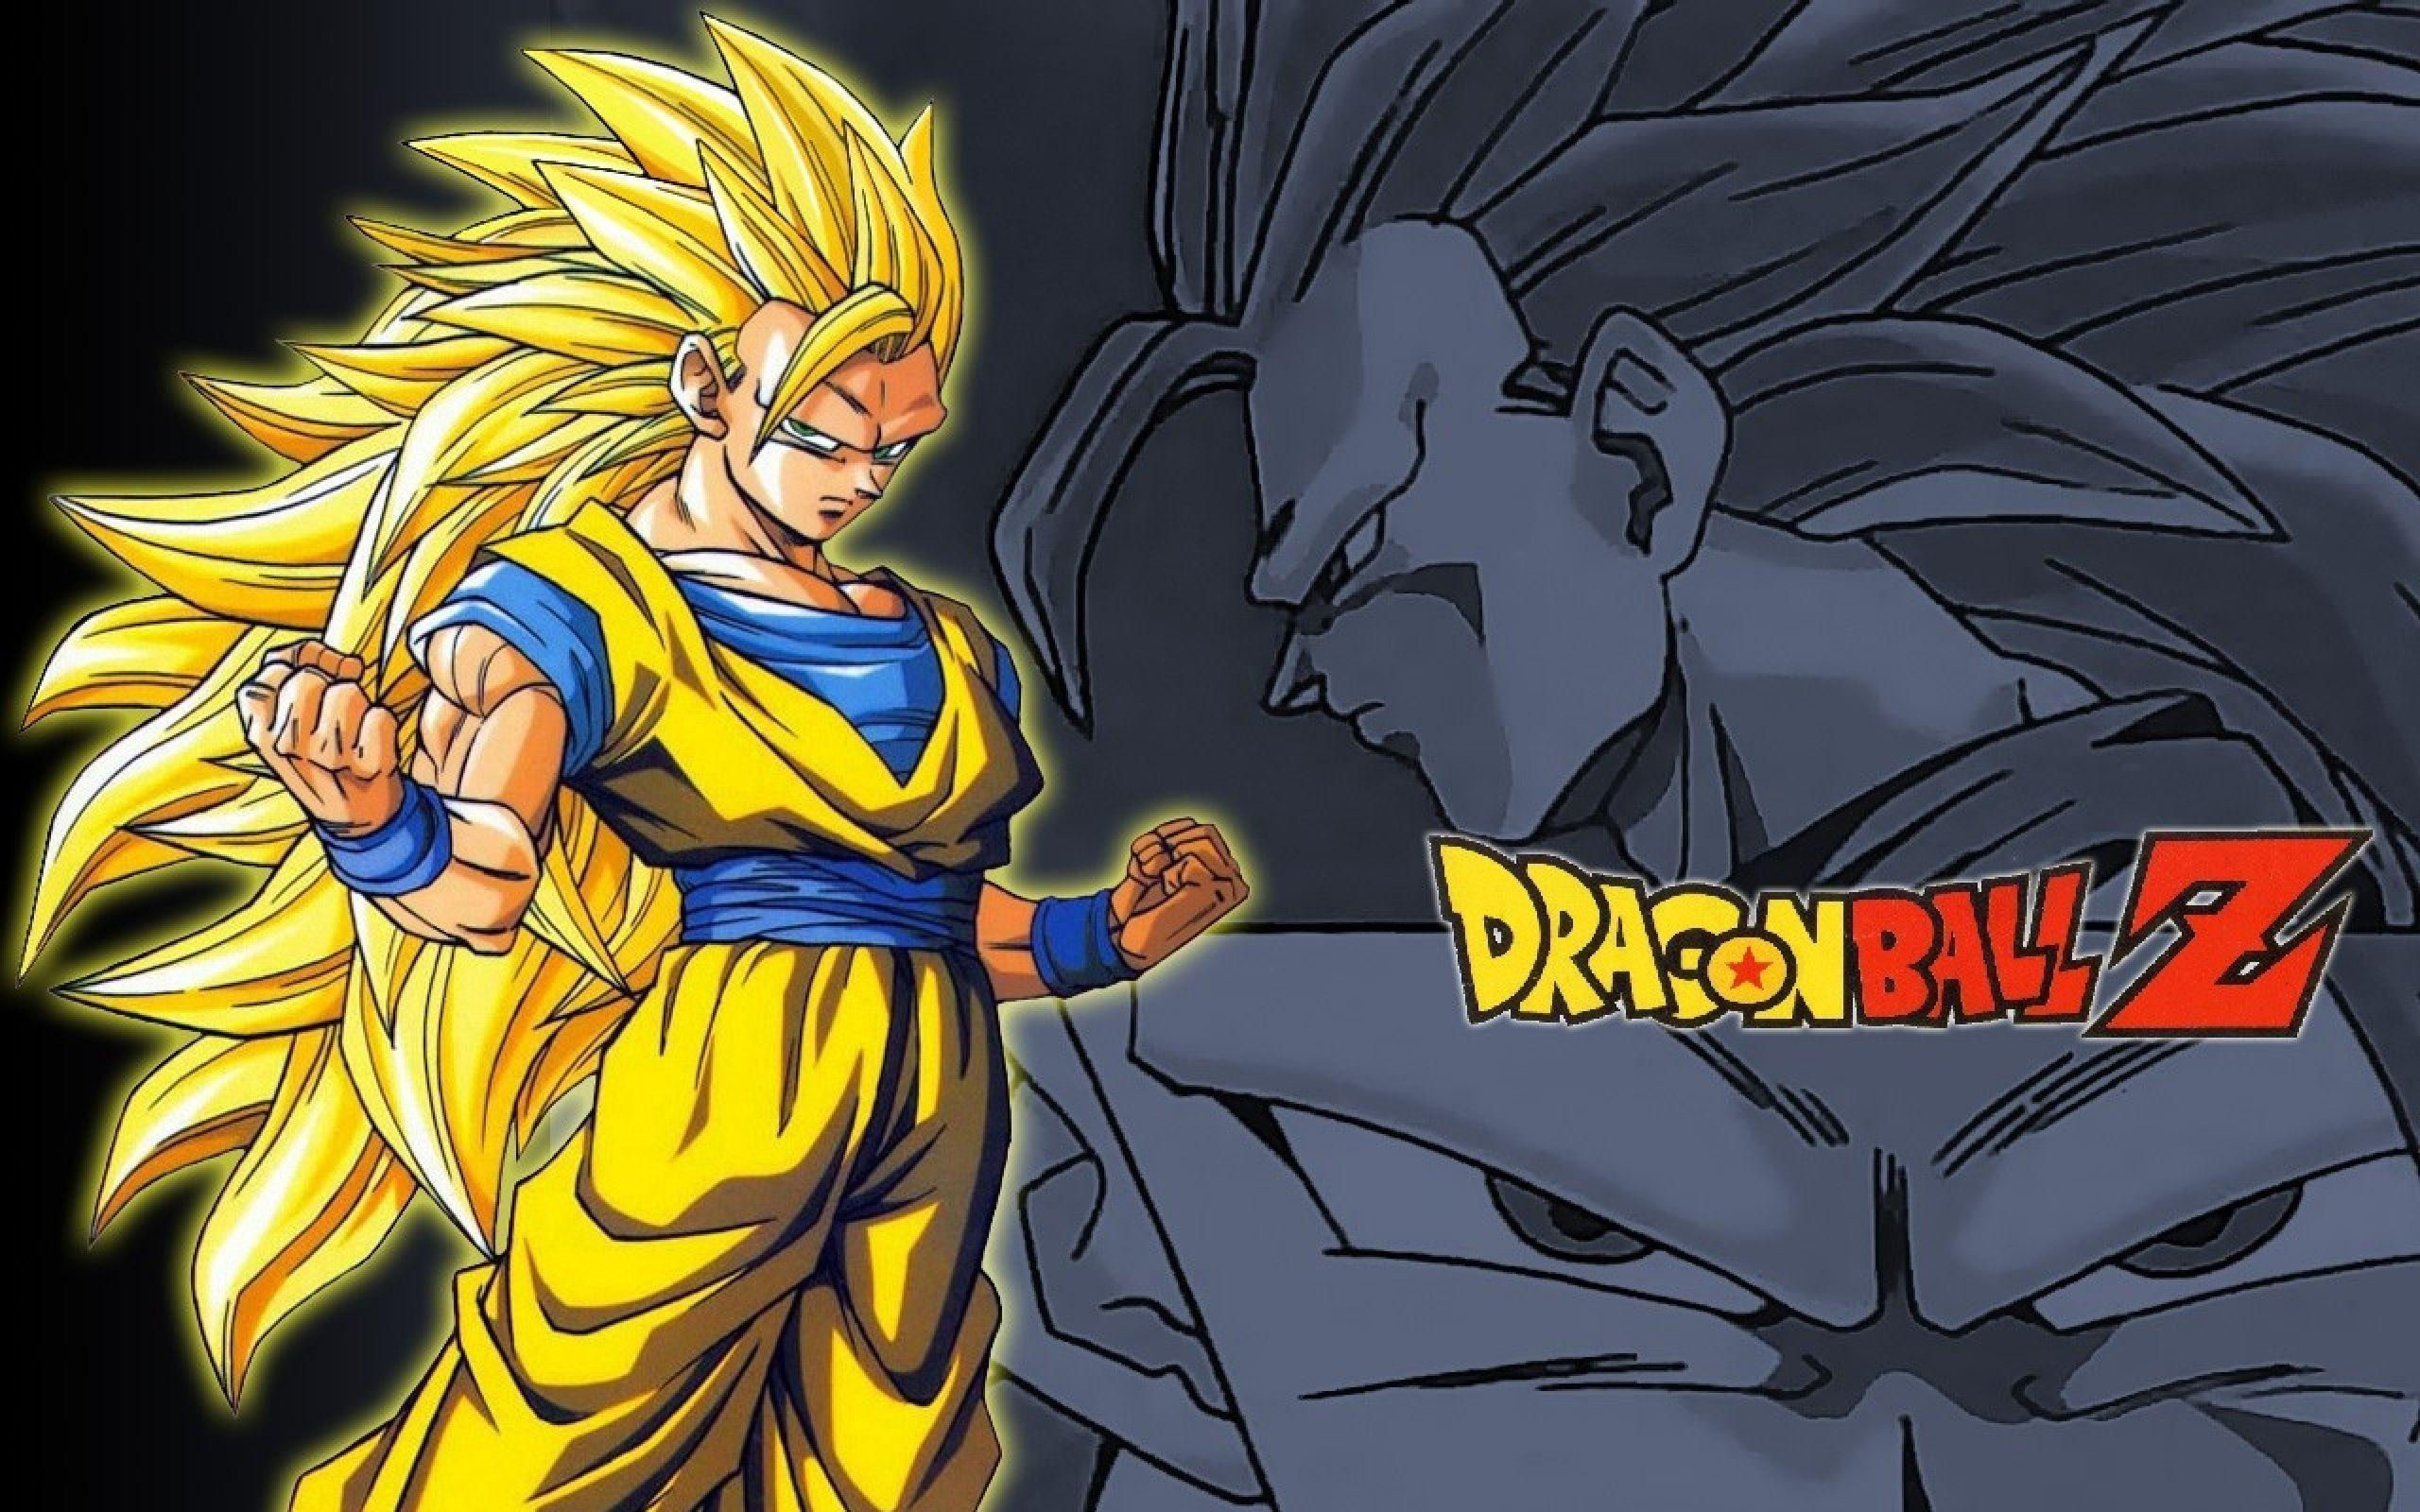 Dragon Ball Z Wallpapers Goku Super Saiyan God Wallpapers Desktop